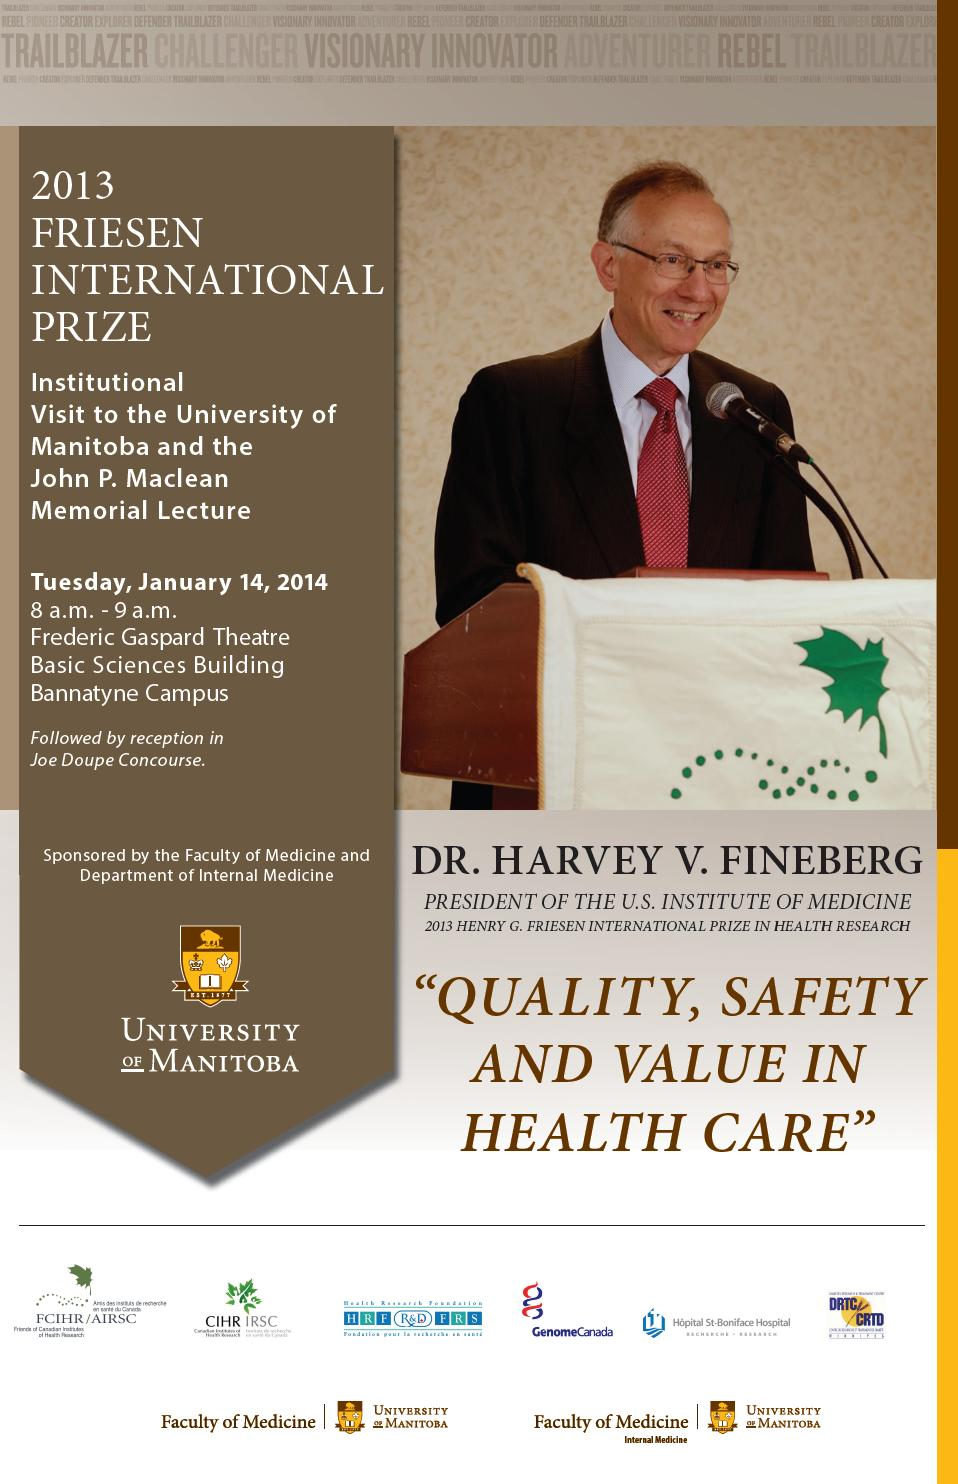 POSTER - U Manitoba Institutional visit - Dr. Harvey V. Fineberg, 2013 Friesen International Prizewinner